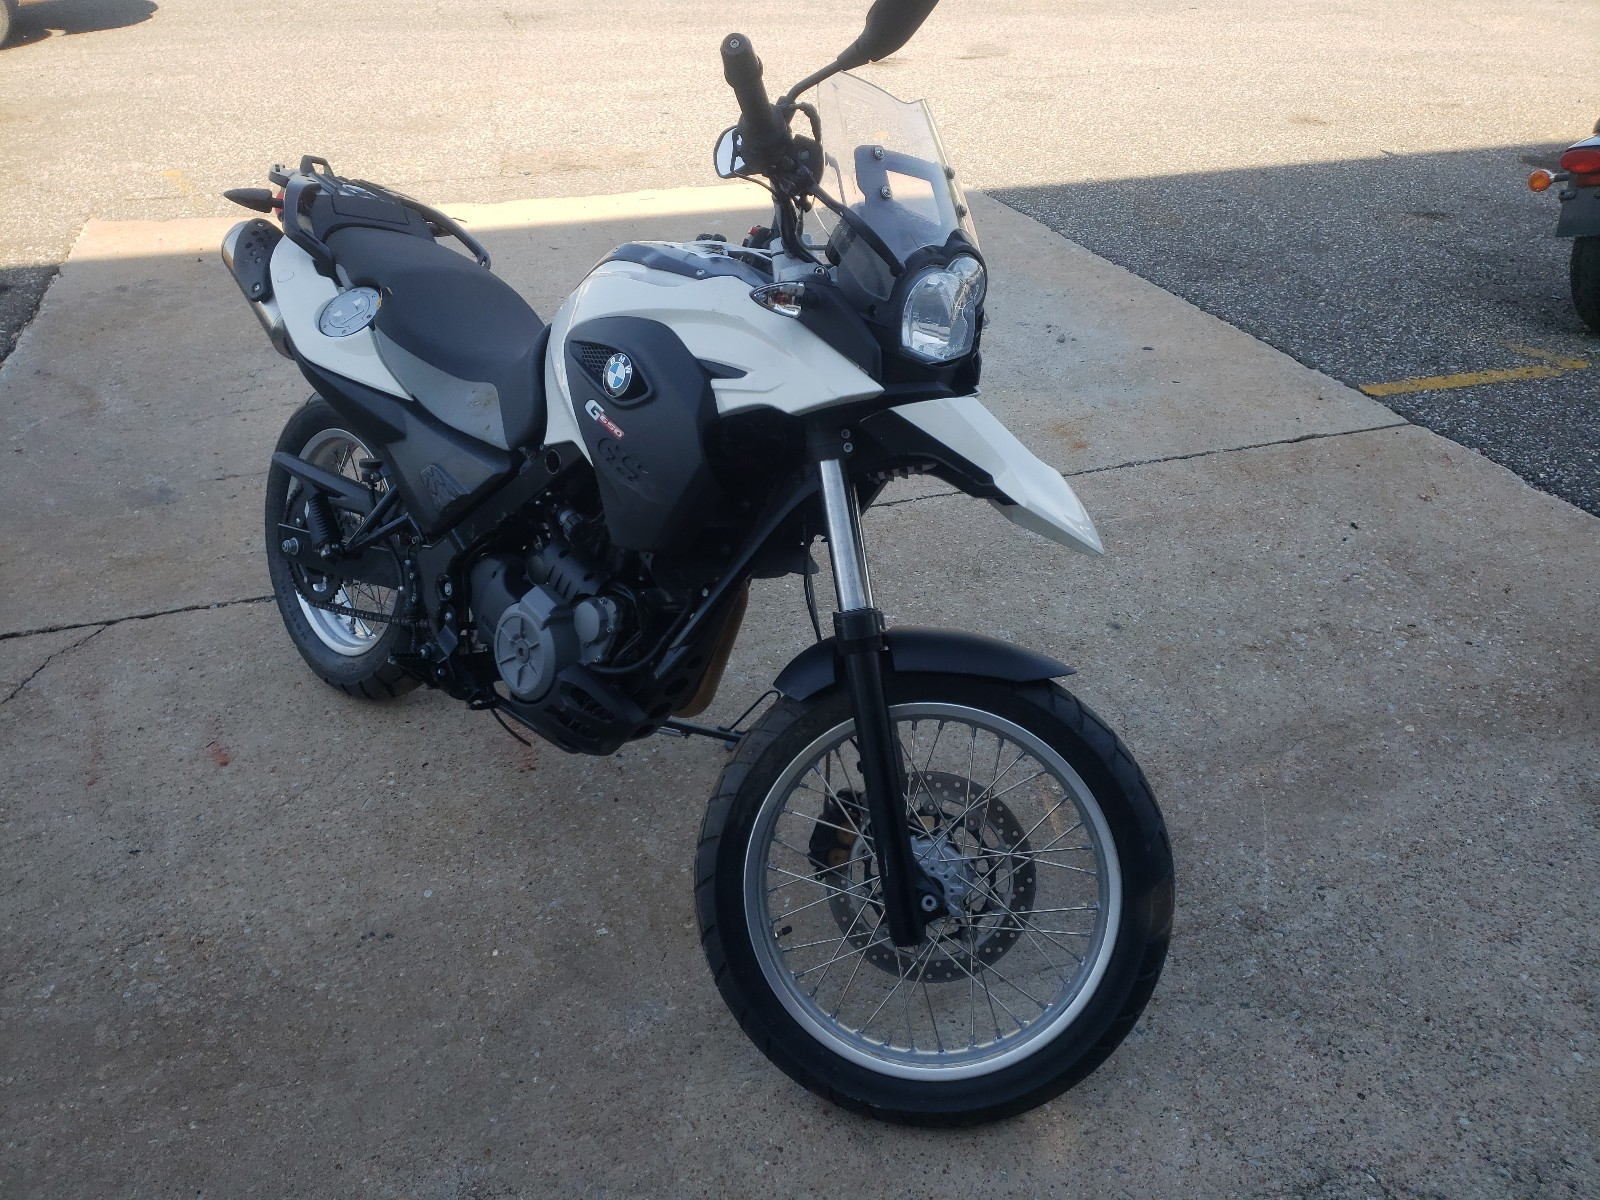 2016 bmw g650 gs for sale at copart oklahoma city ok lot 47099140 salvagereseller com salvagereseller com